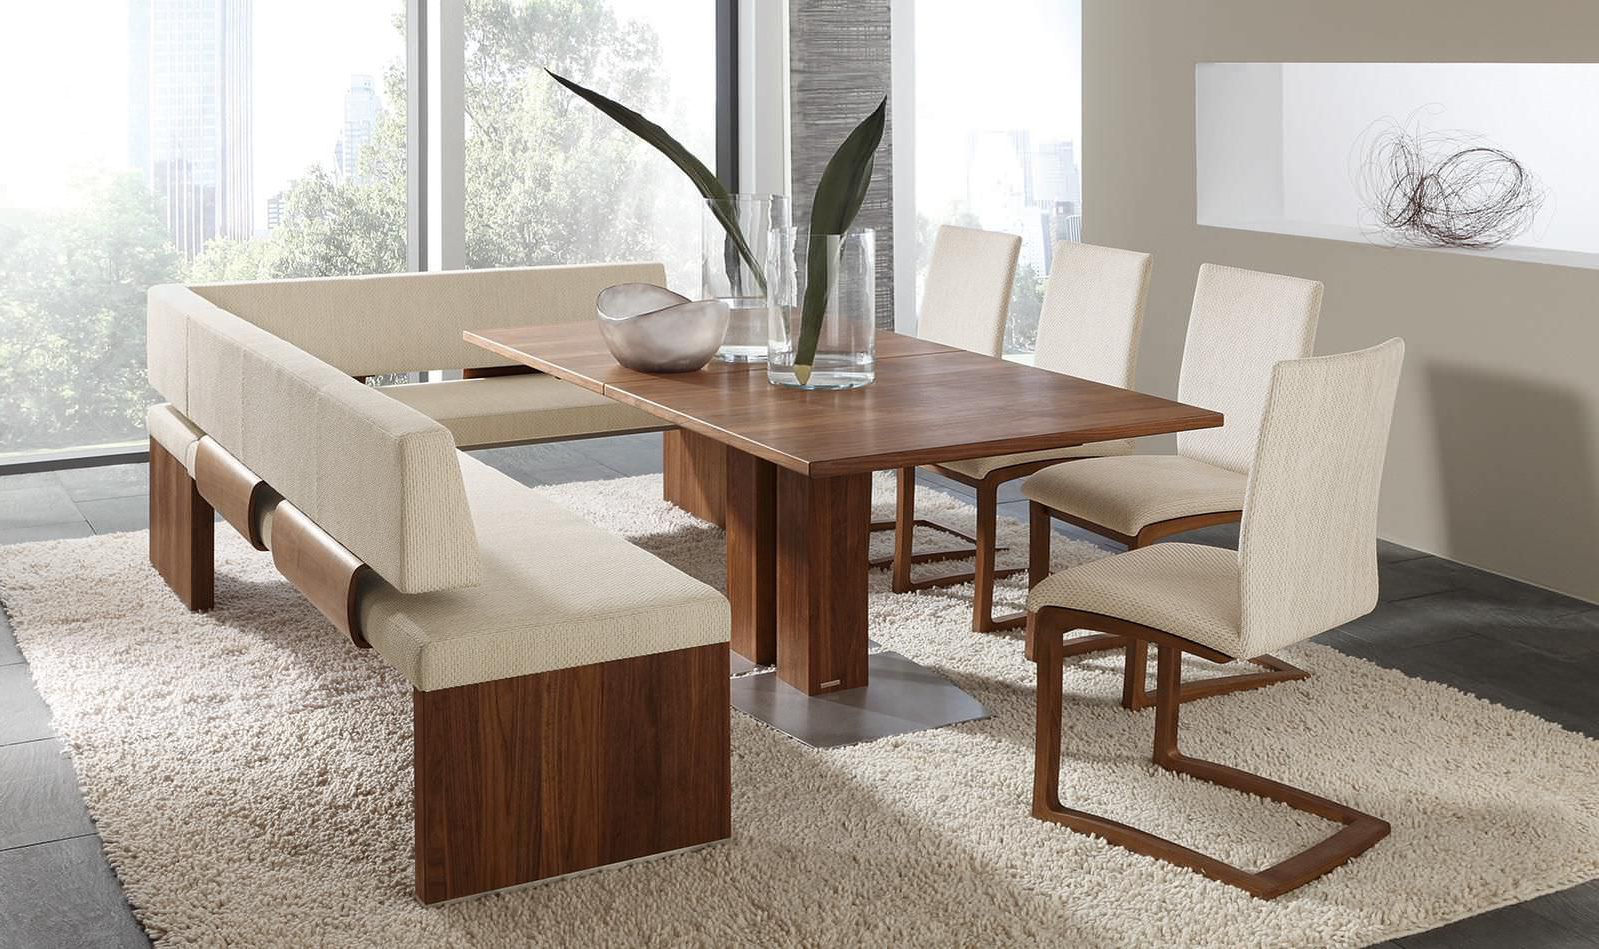 Trendy Modern Dining Tables Intended For Contemporary Dining Table / Wooden / Rectangular – Et364 (Gallery 21 of 30)